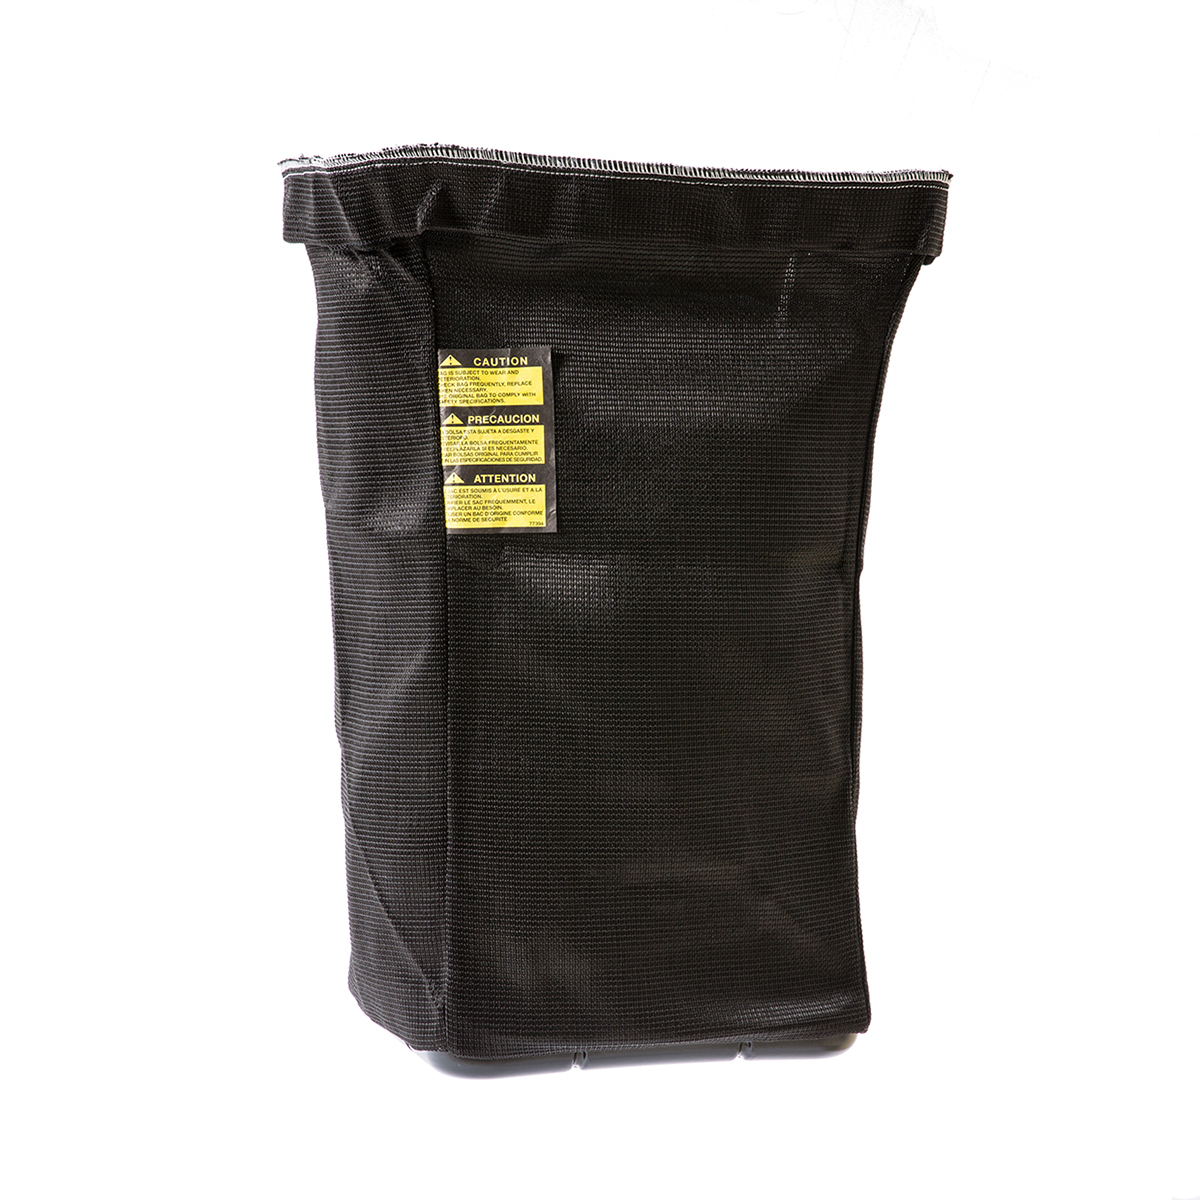 Replacement Bag For 7 Bushel Material Collection Systems